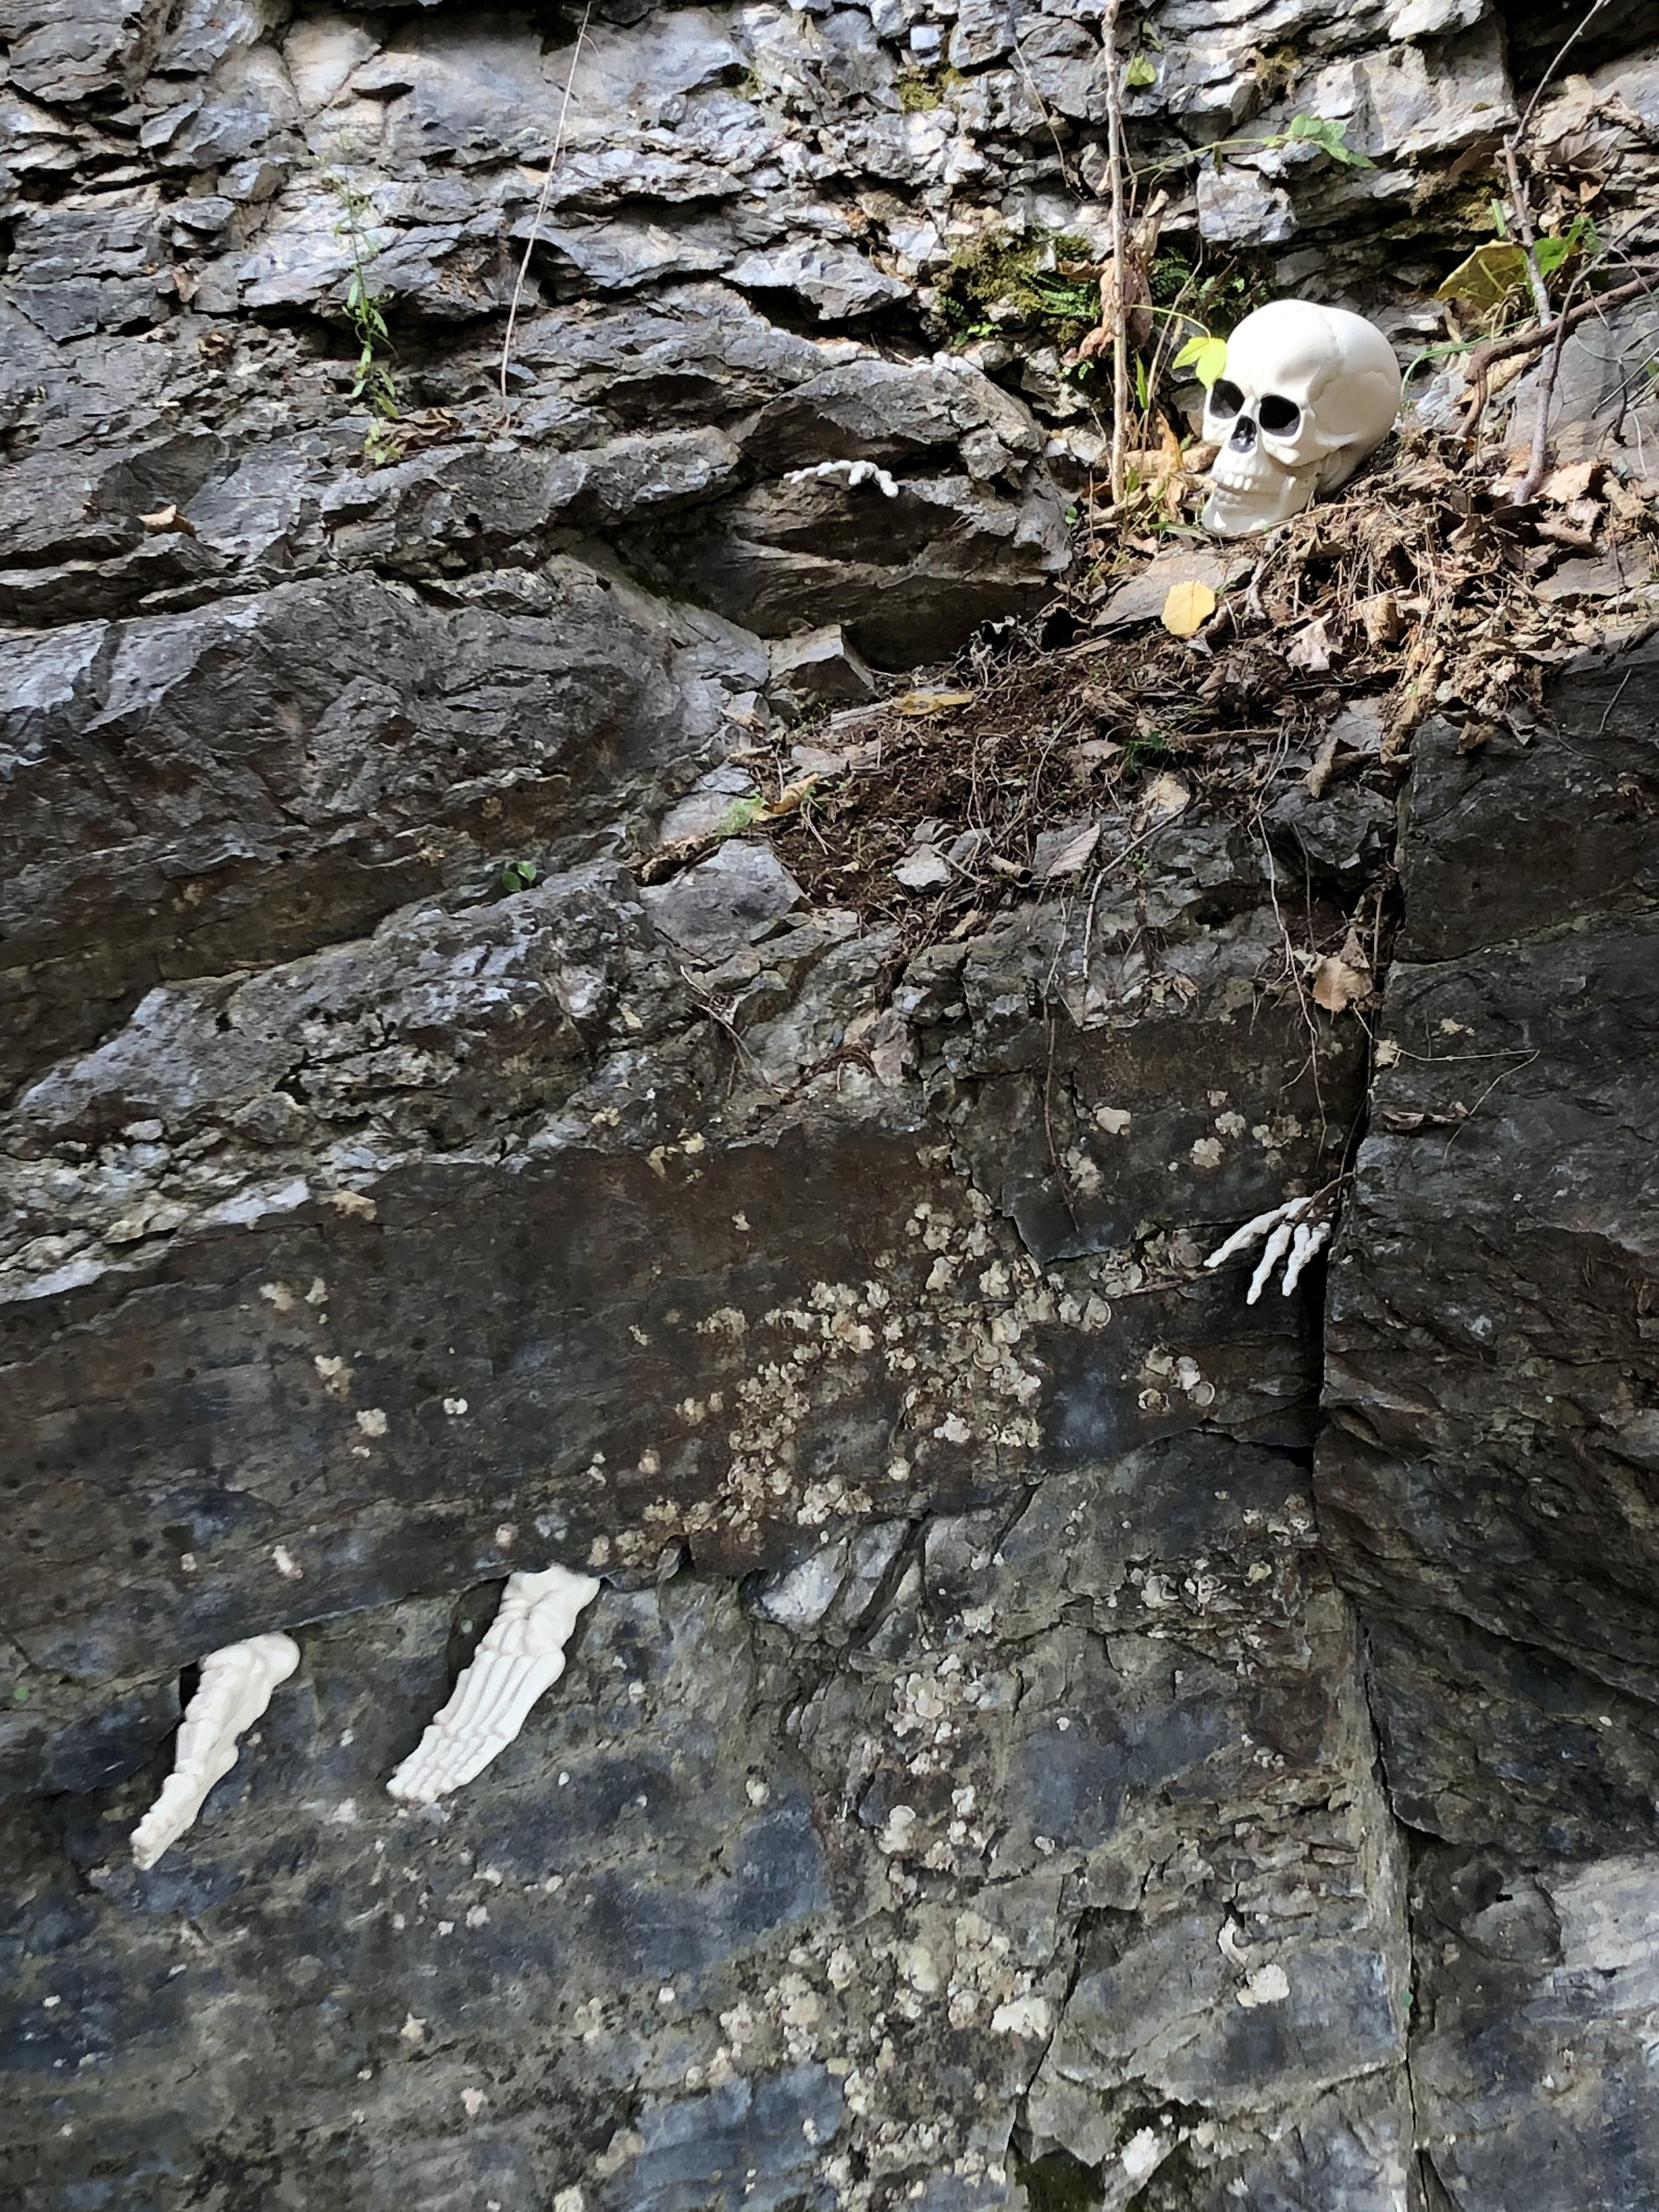 I work at a cave, and they put me in charge of decorating for Halloween. Probably a mistake on their part.